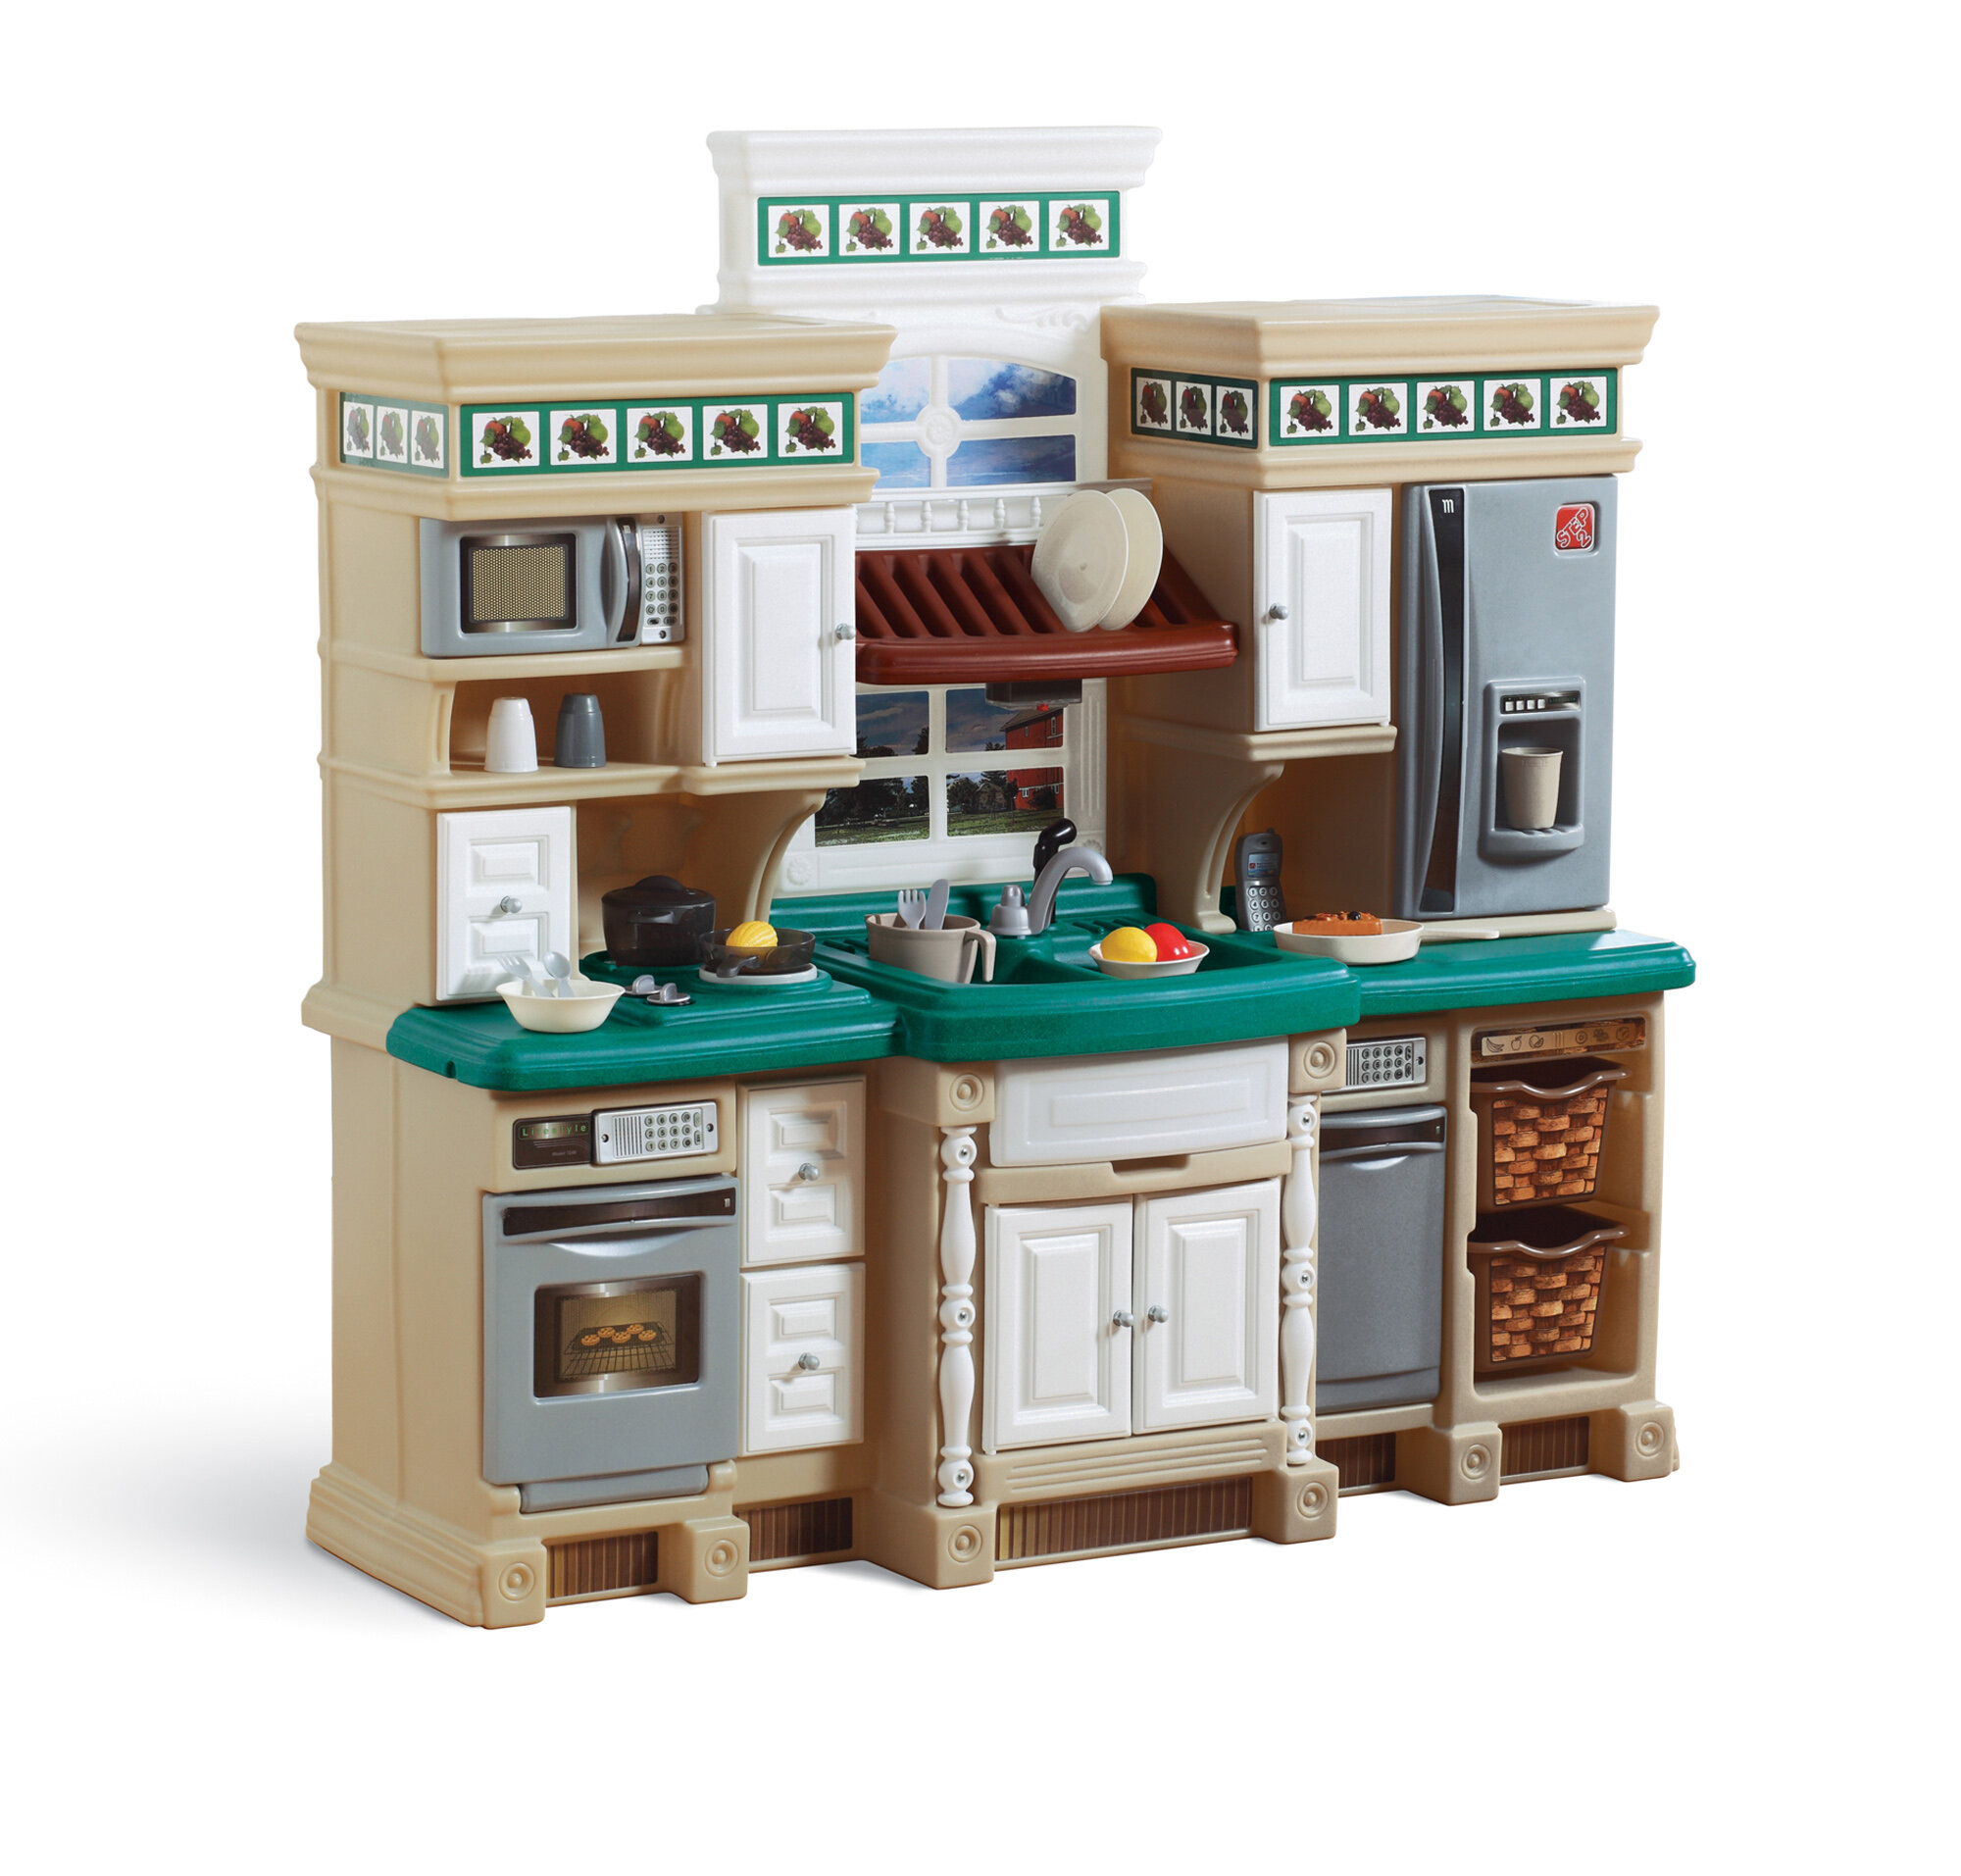 Step2 lifestyle deluxe kitchen set ebay for Kitchen set pictures